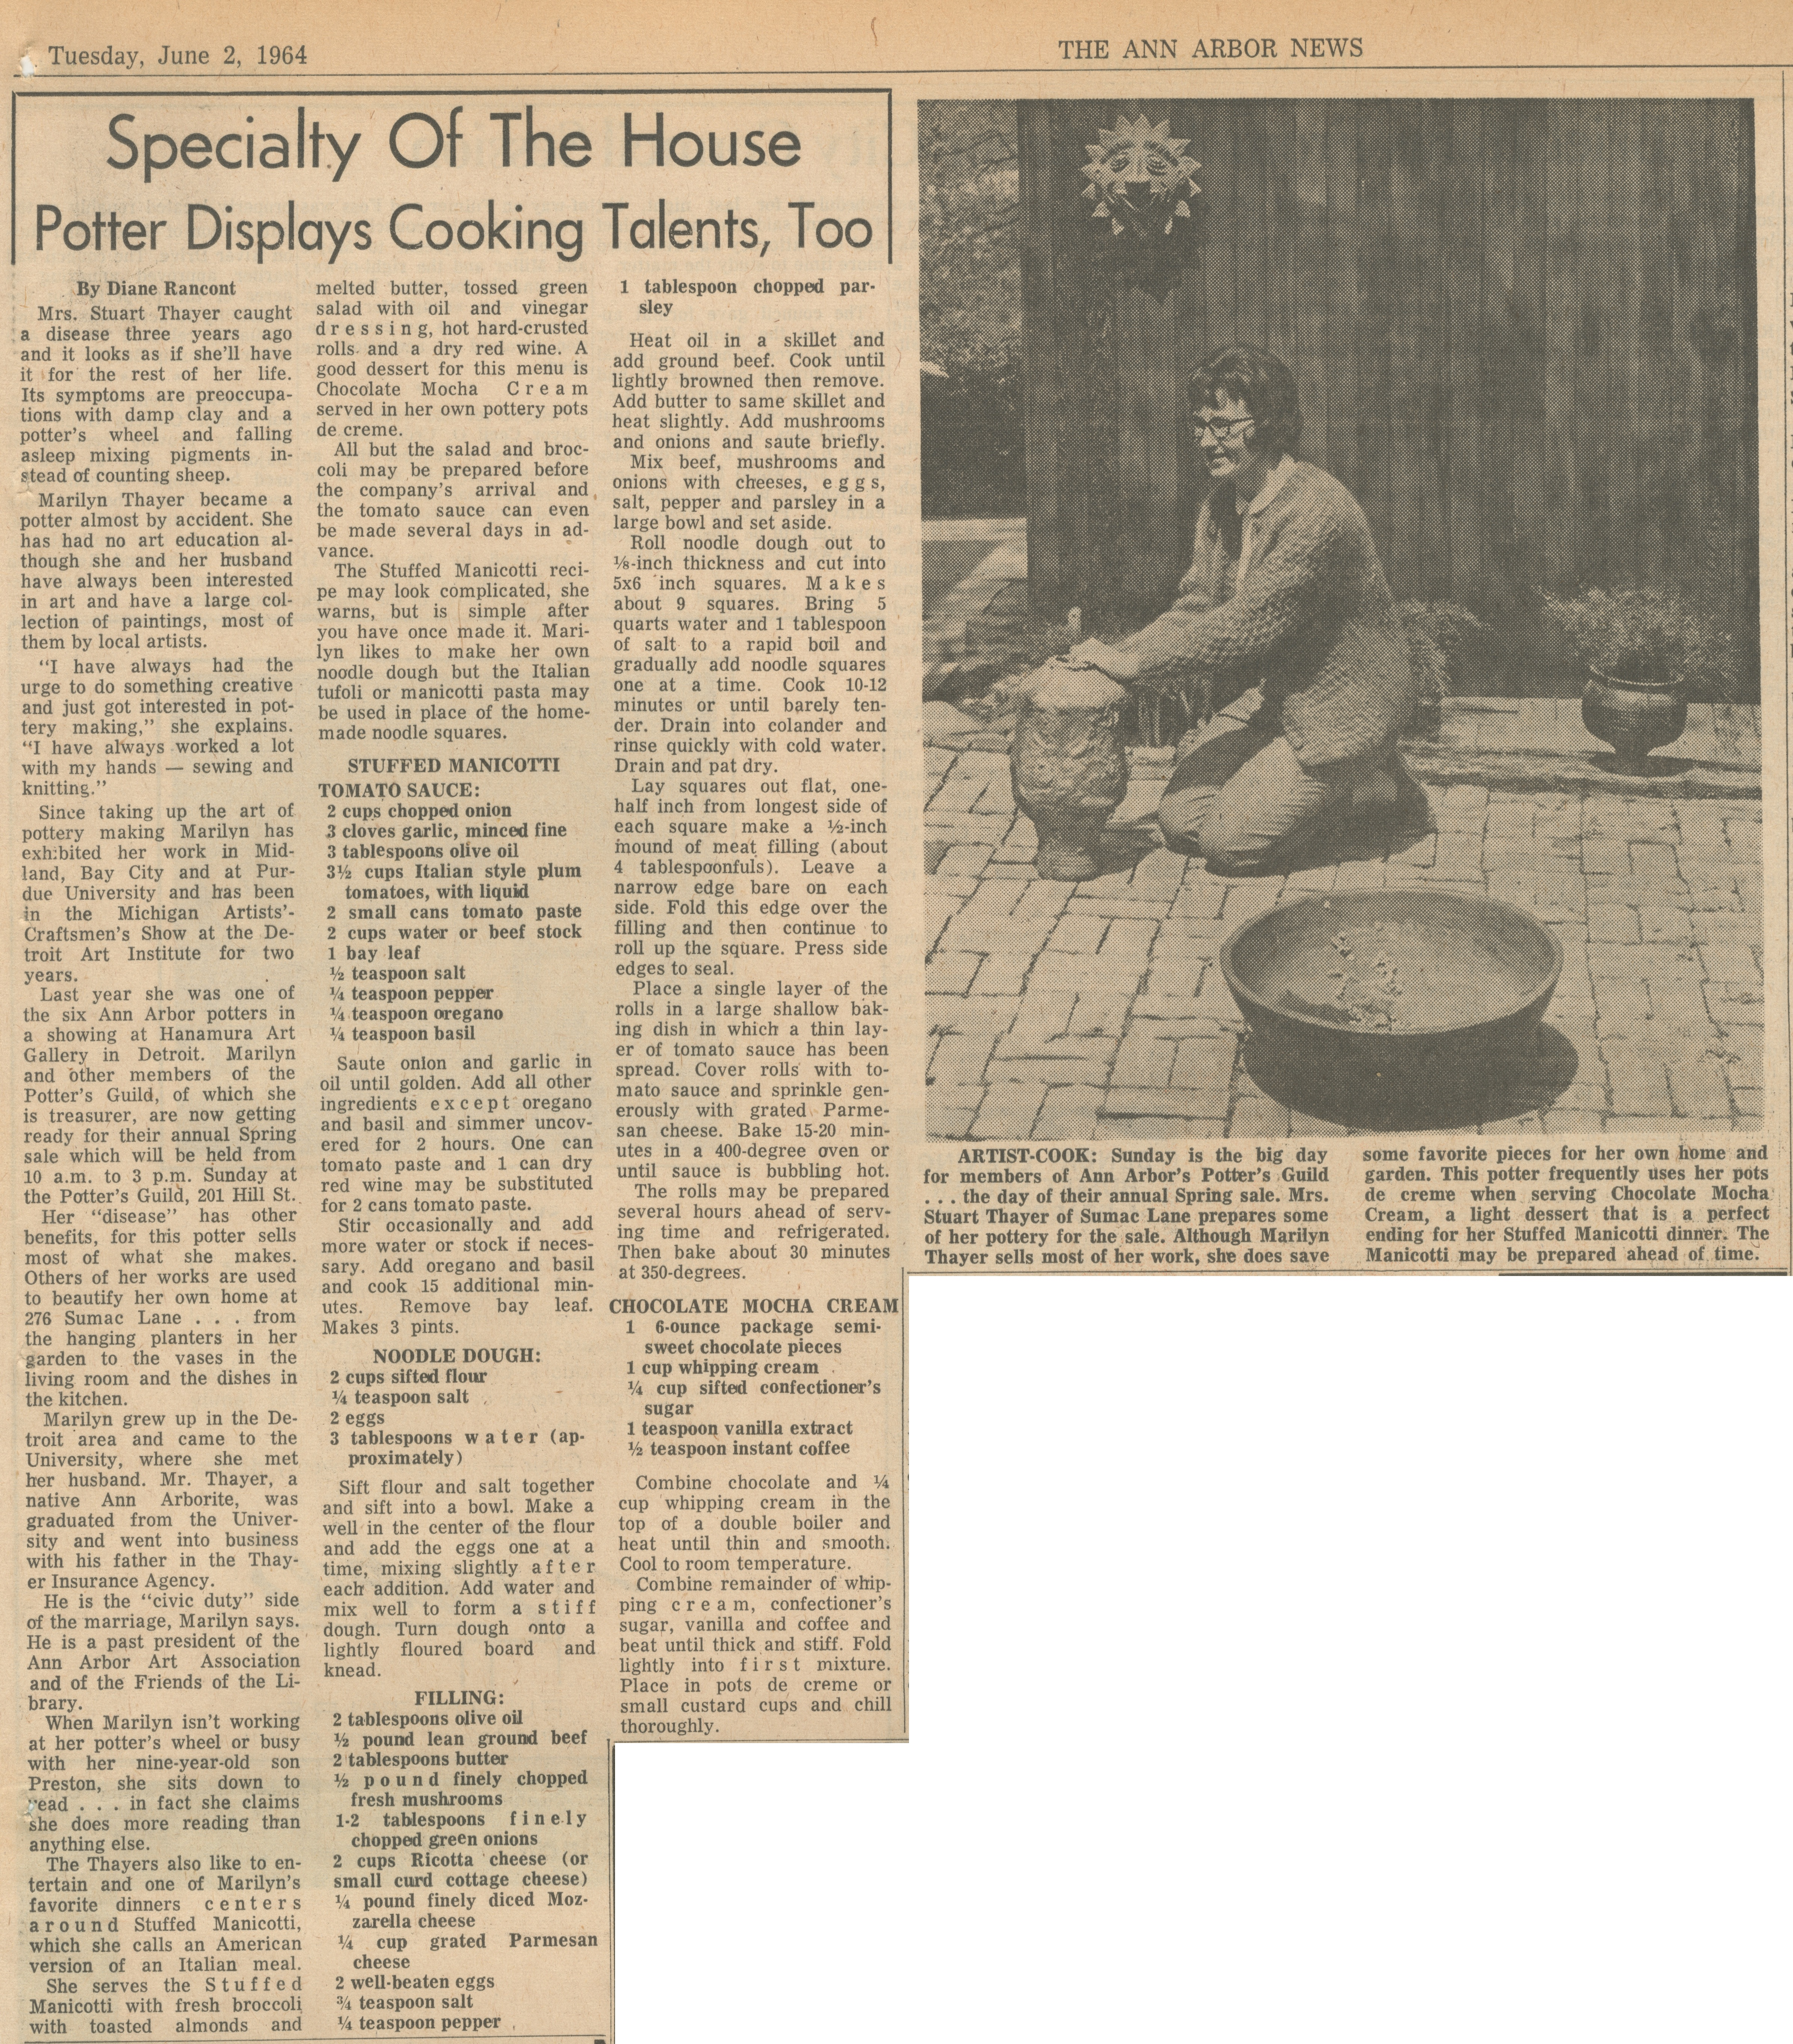 Potter Displays Cooking Talents, Too image